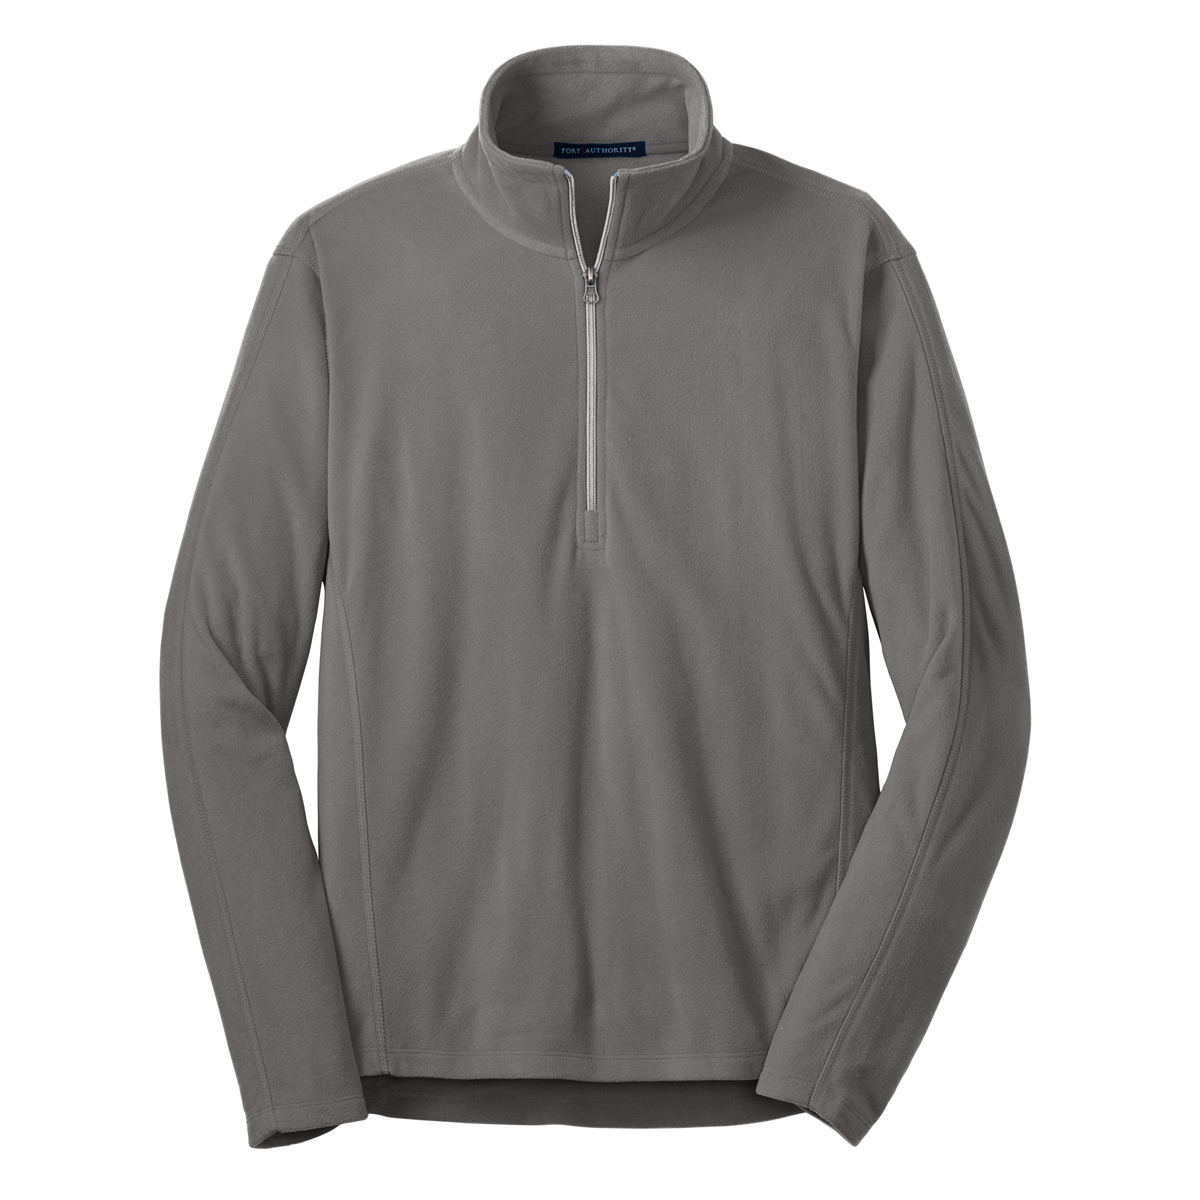 PORT AUTHORITY Men's MICROFLEECE 1/2 ZIP PULLOVER (F224)